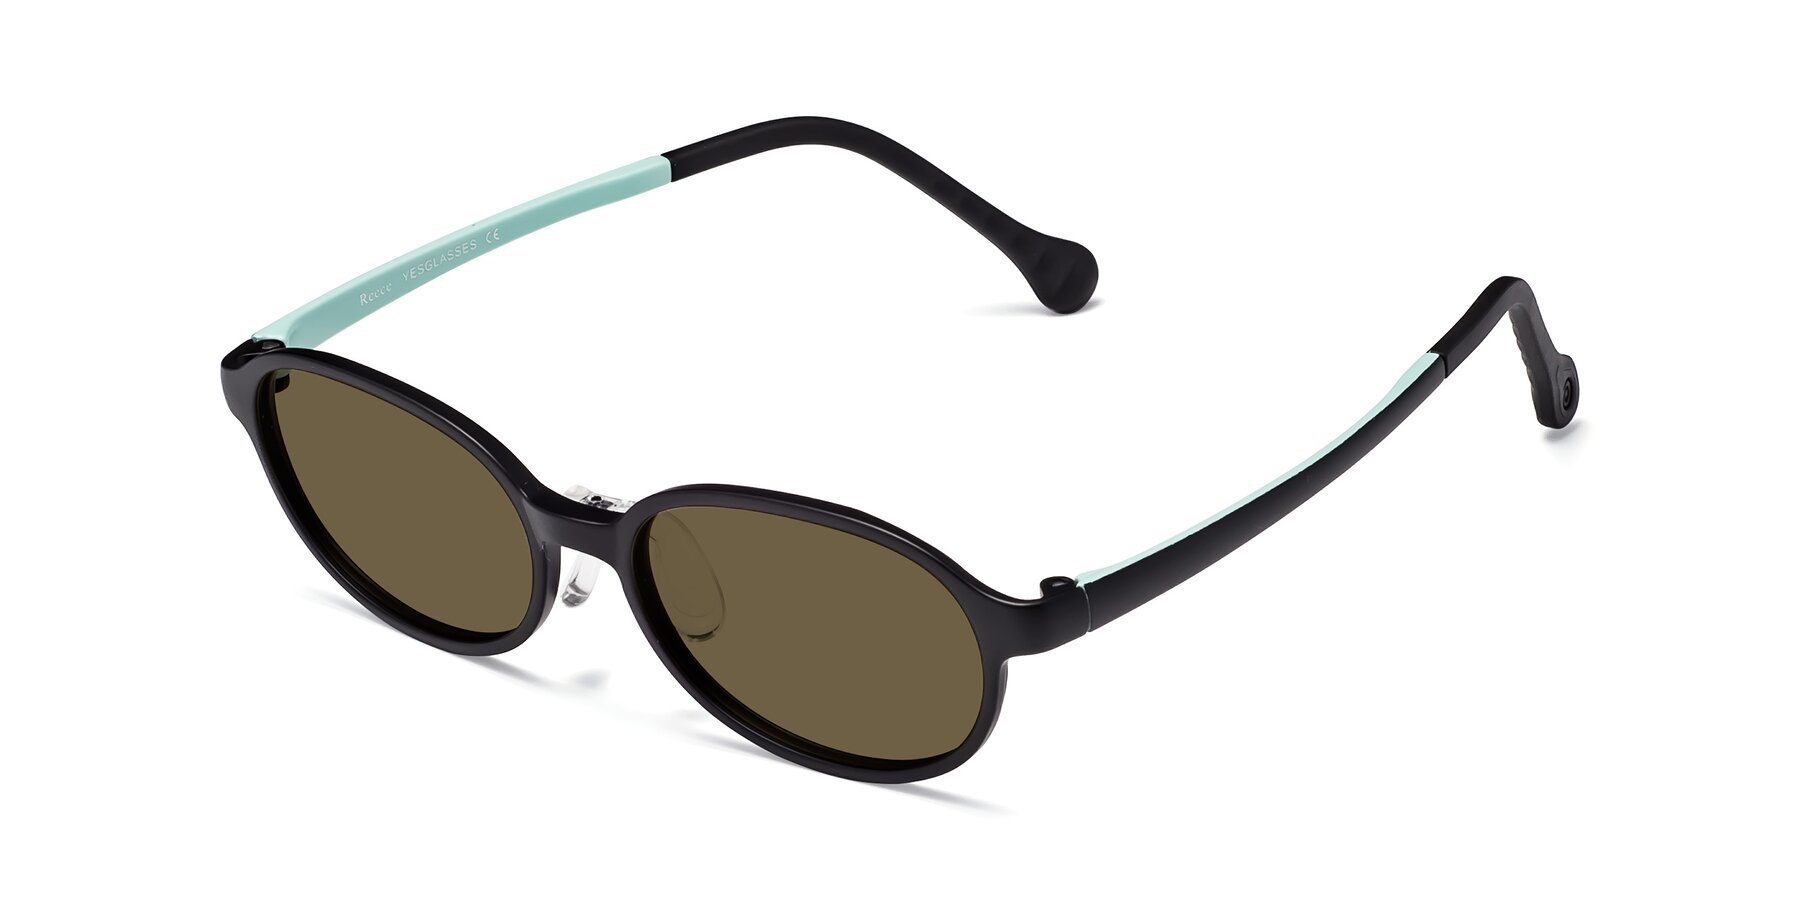 Angle of Reece in Black-Teal with Brown Polarized Lenses